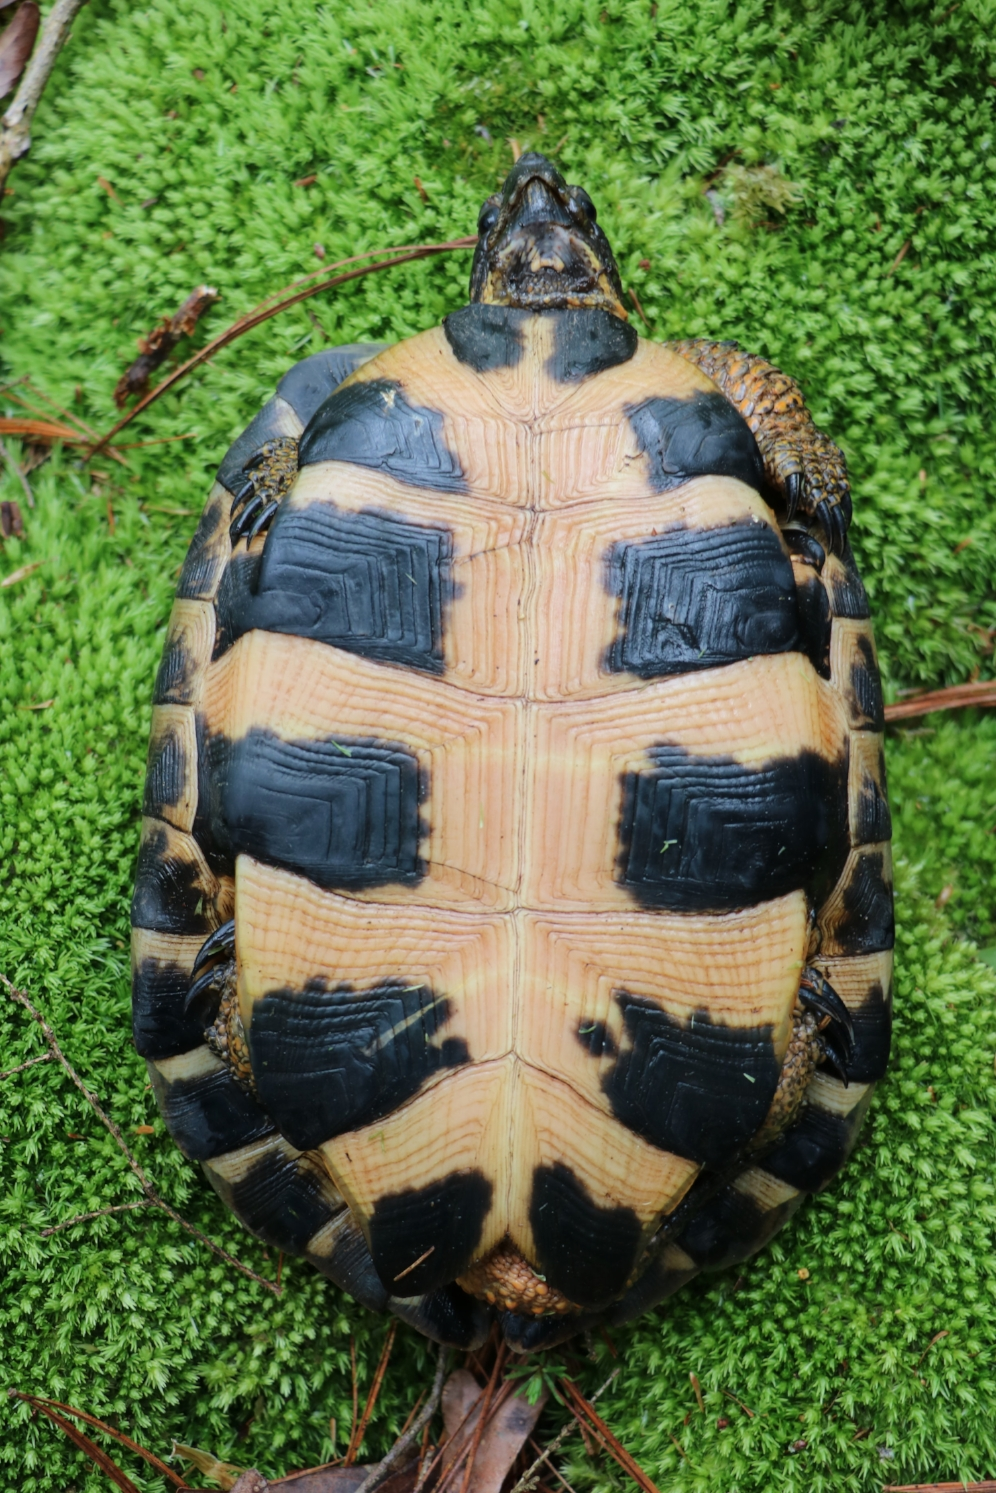 Plastron of an adult female wood turtle ( Glyptemys   insculpta ) in southwestern Michigan. Photograph by George L. Heinrich.